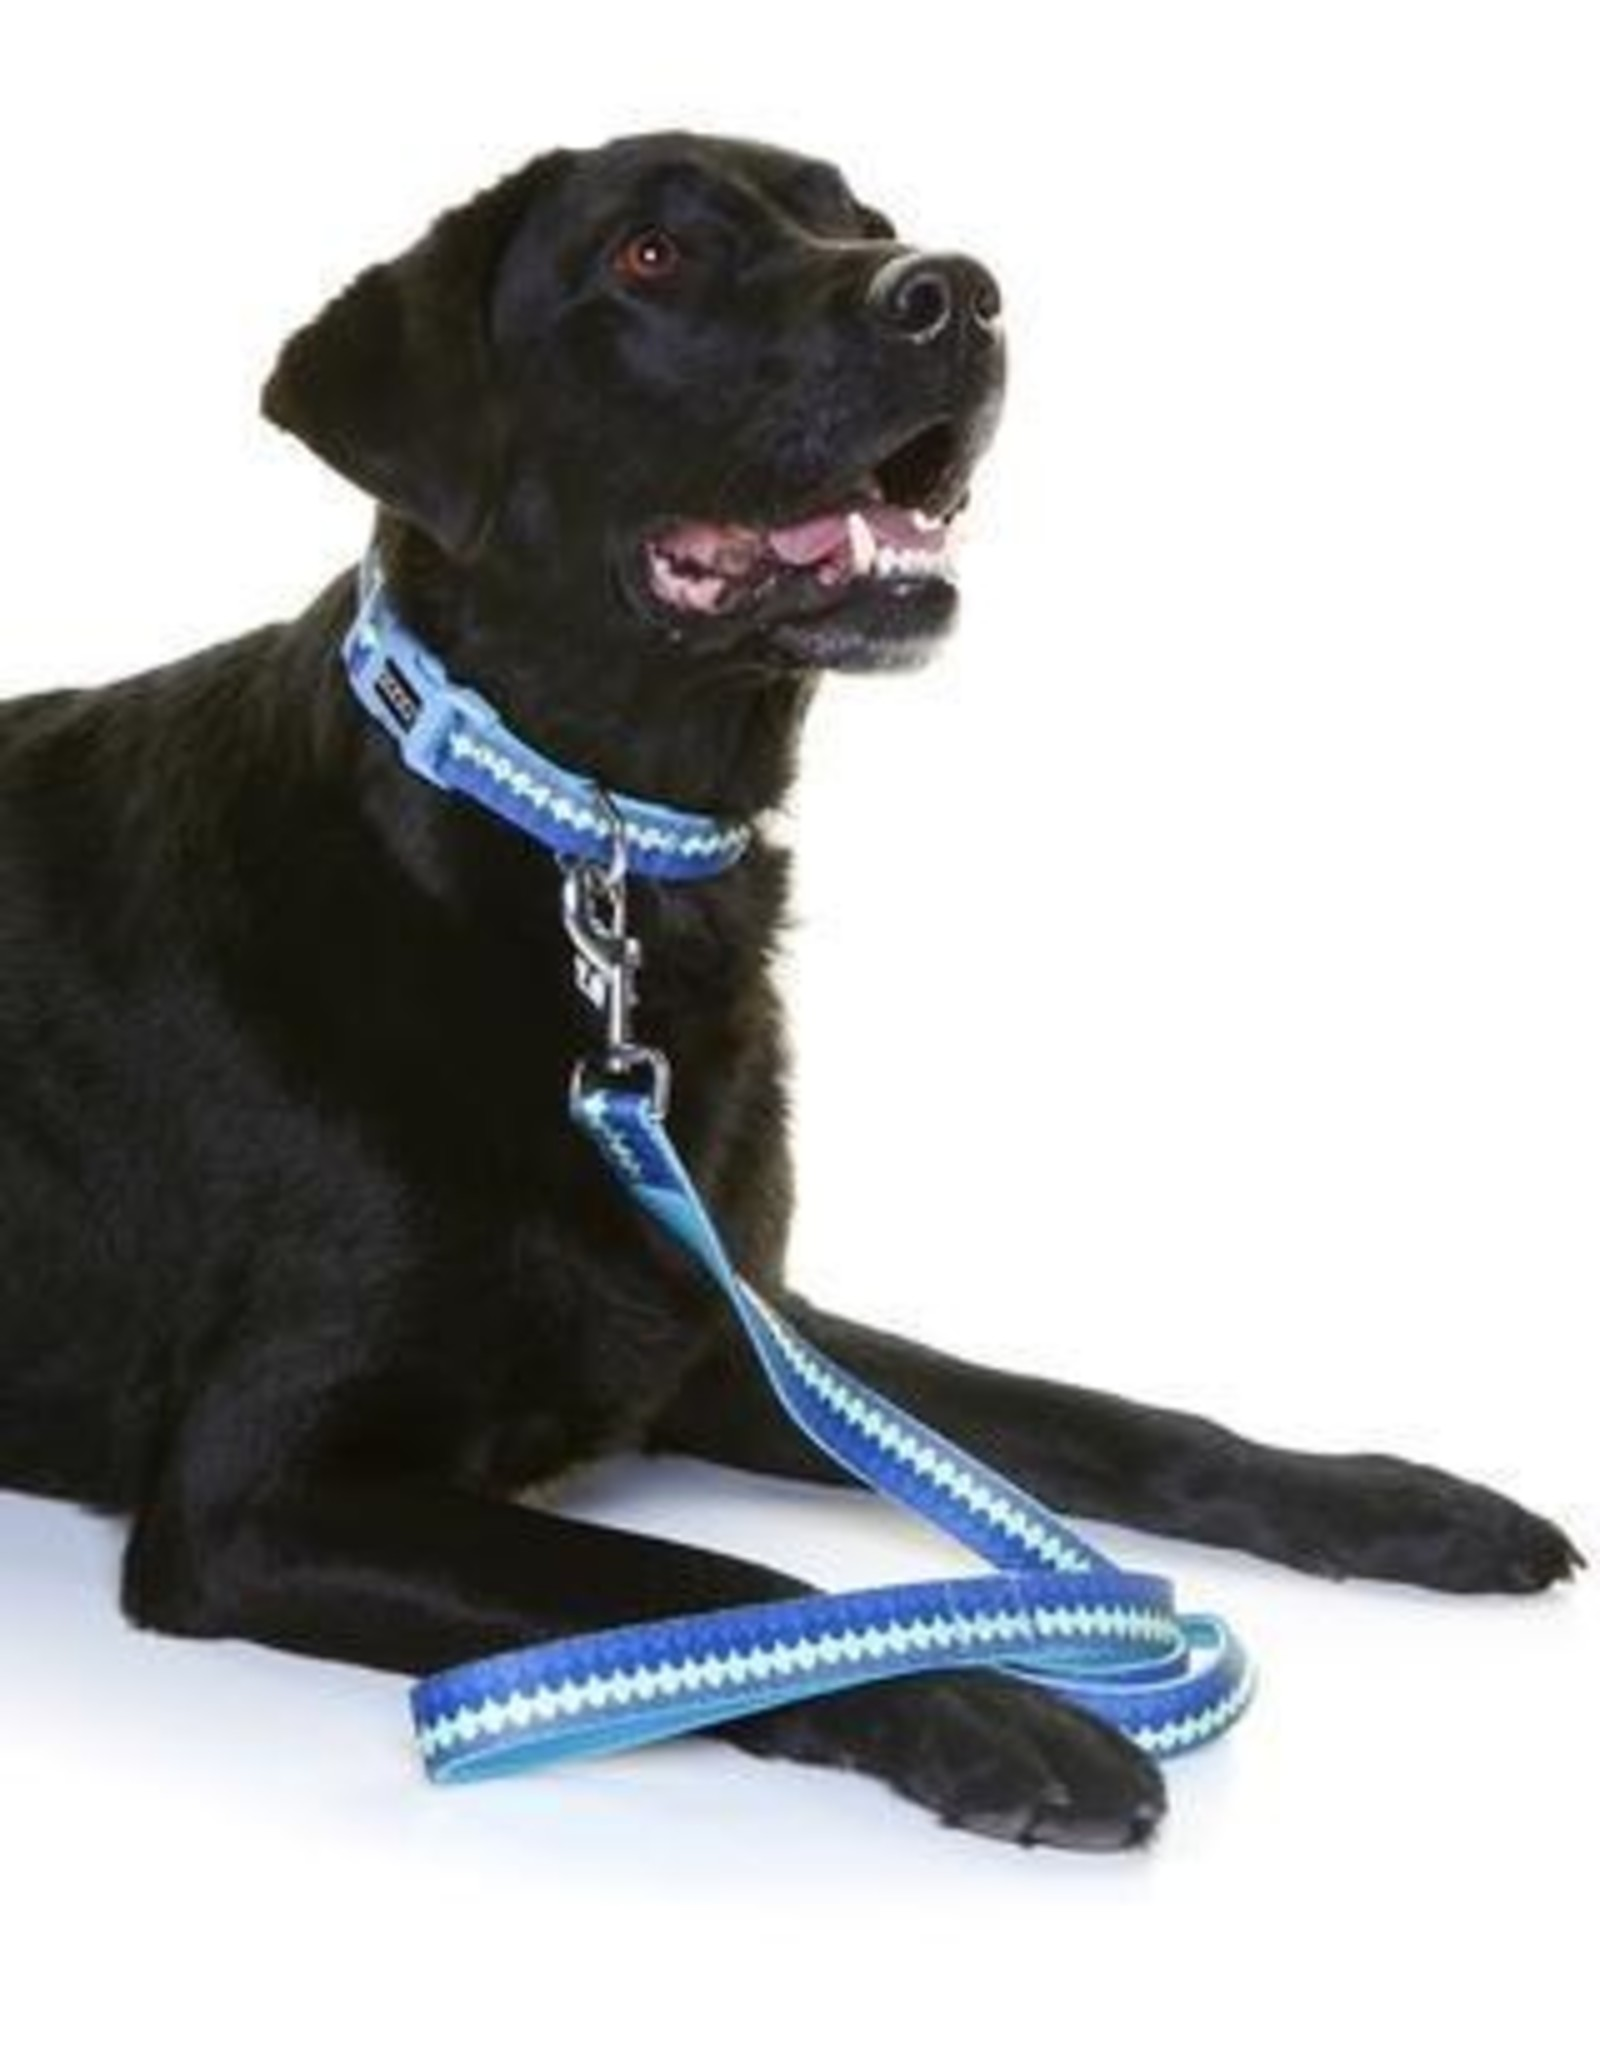 DOOG Doog | Neoprene Dog Lead - Pluto